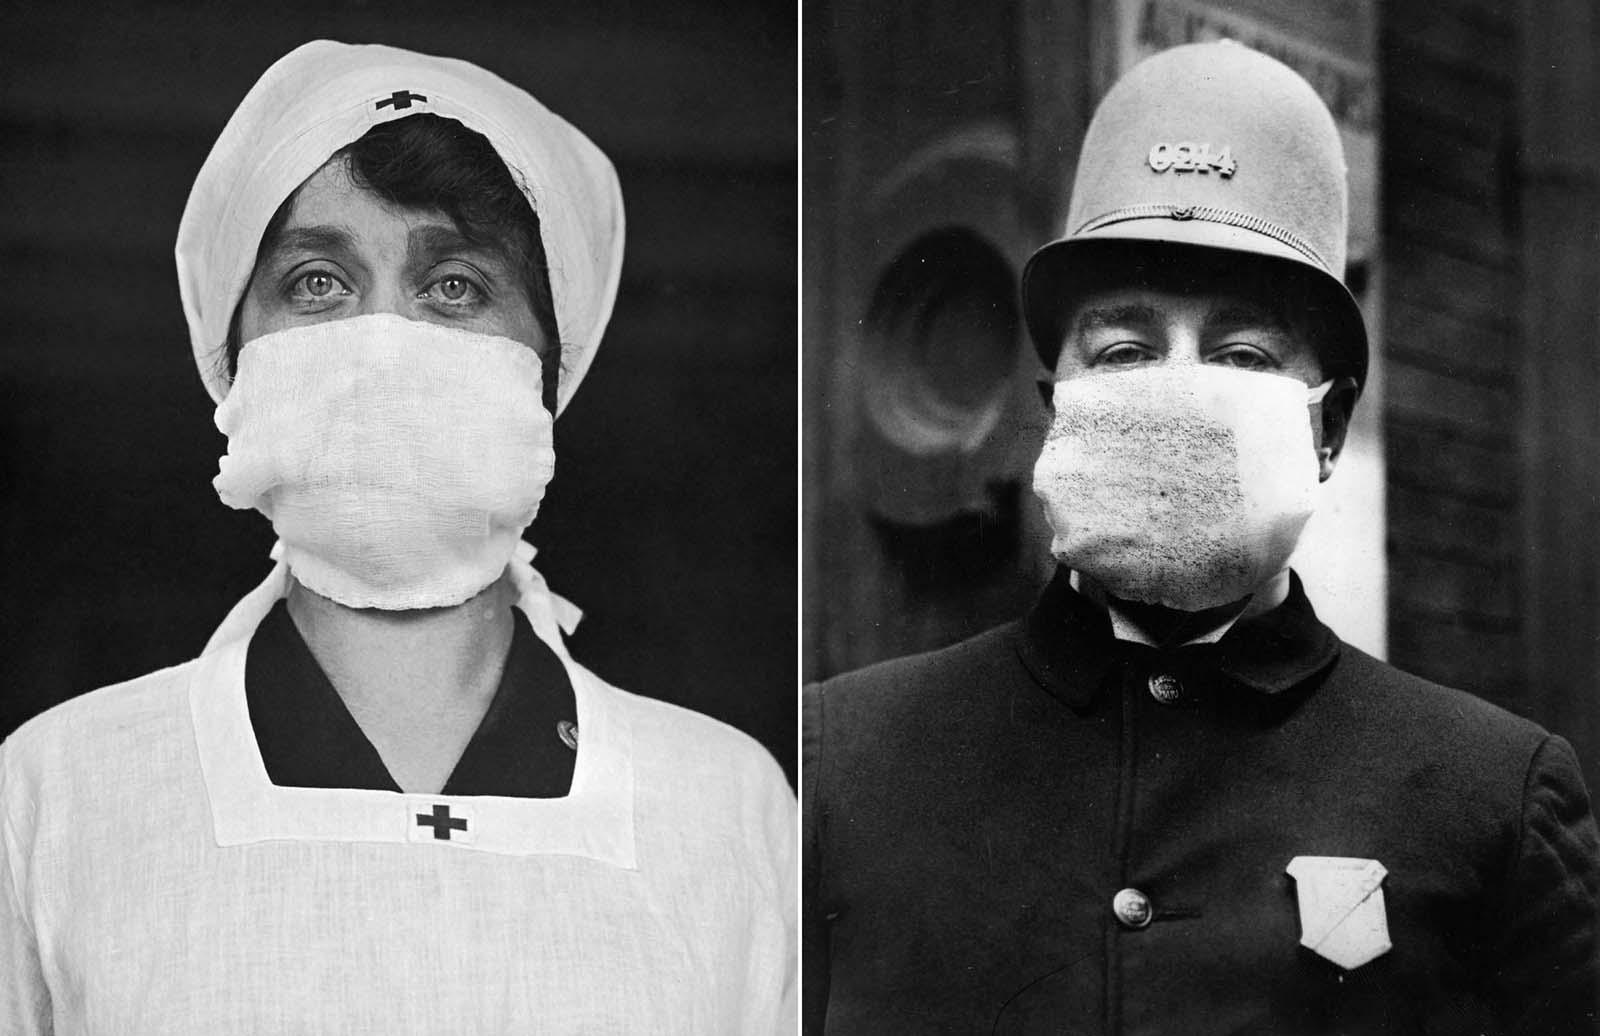 Right: A U.S. Red Cross employee wears a face mask in an attempt to help decrease the spread of influenza. 1918. Left: An American policeman wears a 'flu mask' to protect himself from the Spanish flu outbreak that followed World War I. 1918.